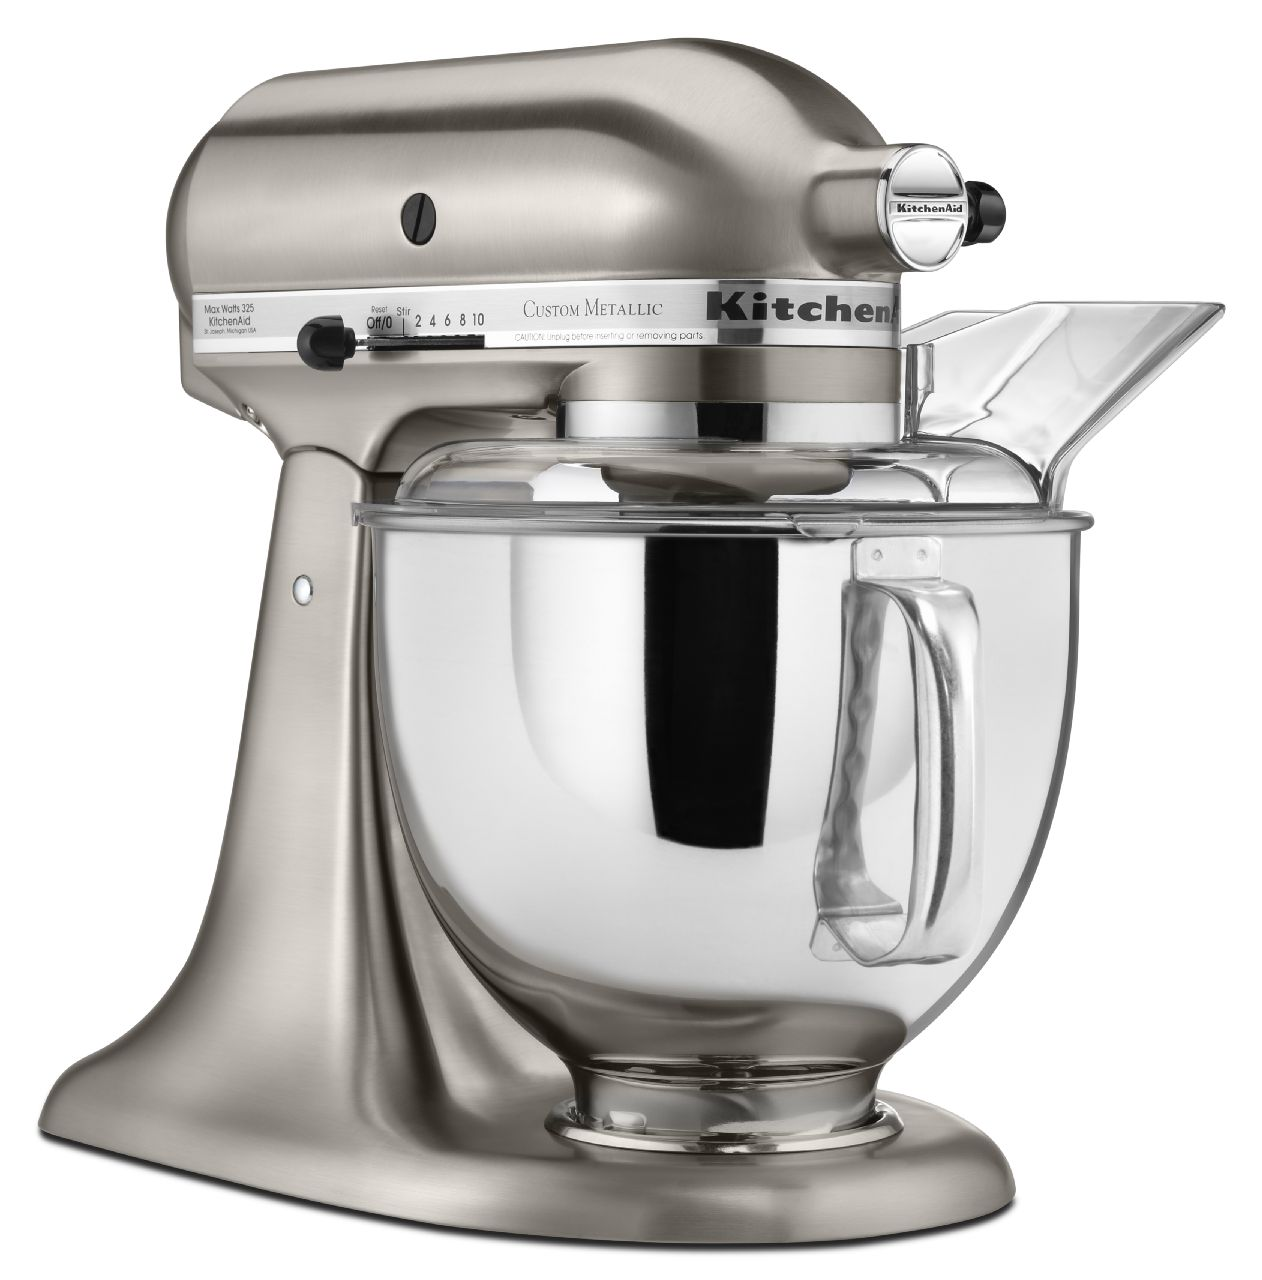 KitchenAid-Custom-Metallic-Series-5-Quart-Tilt-Head-Stand-Mixer-KSM152PS thumbnail 3